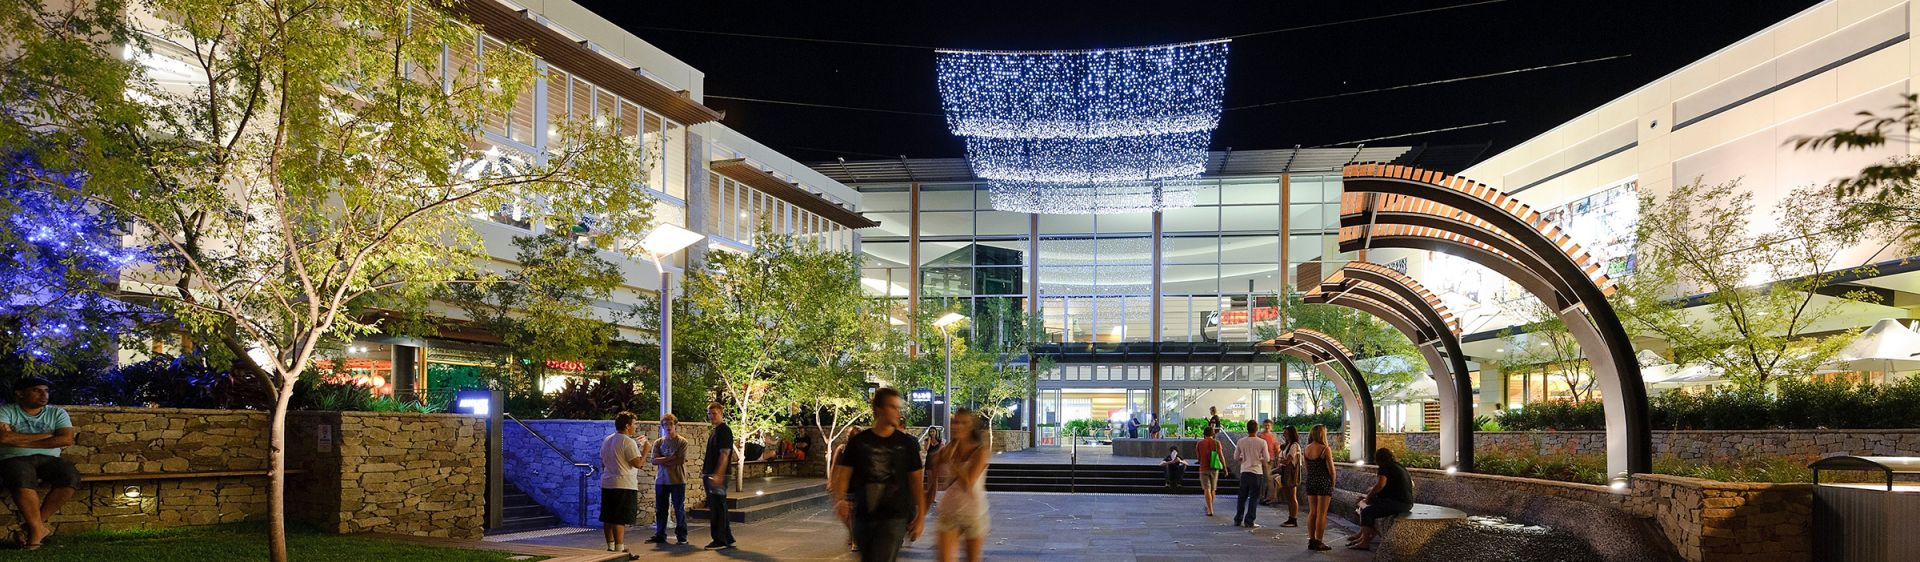 Late night shoppers at Charlestown Square shopping centre, Lake Macquarie